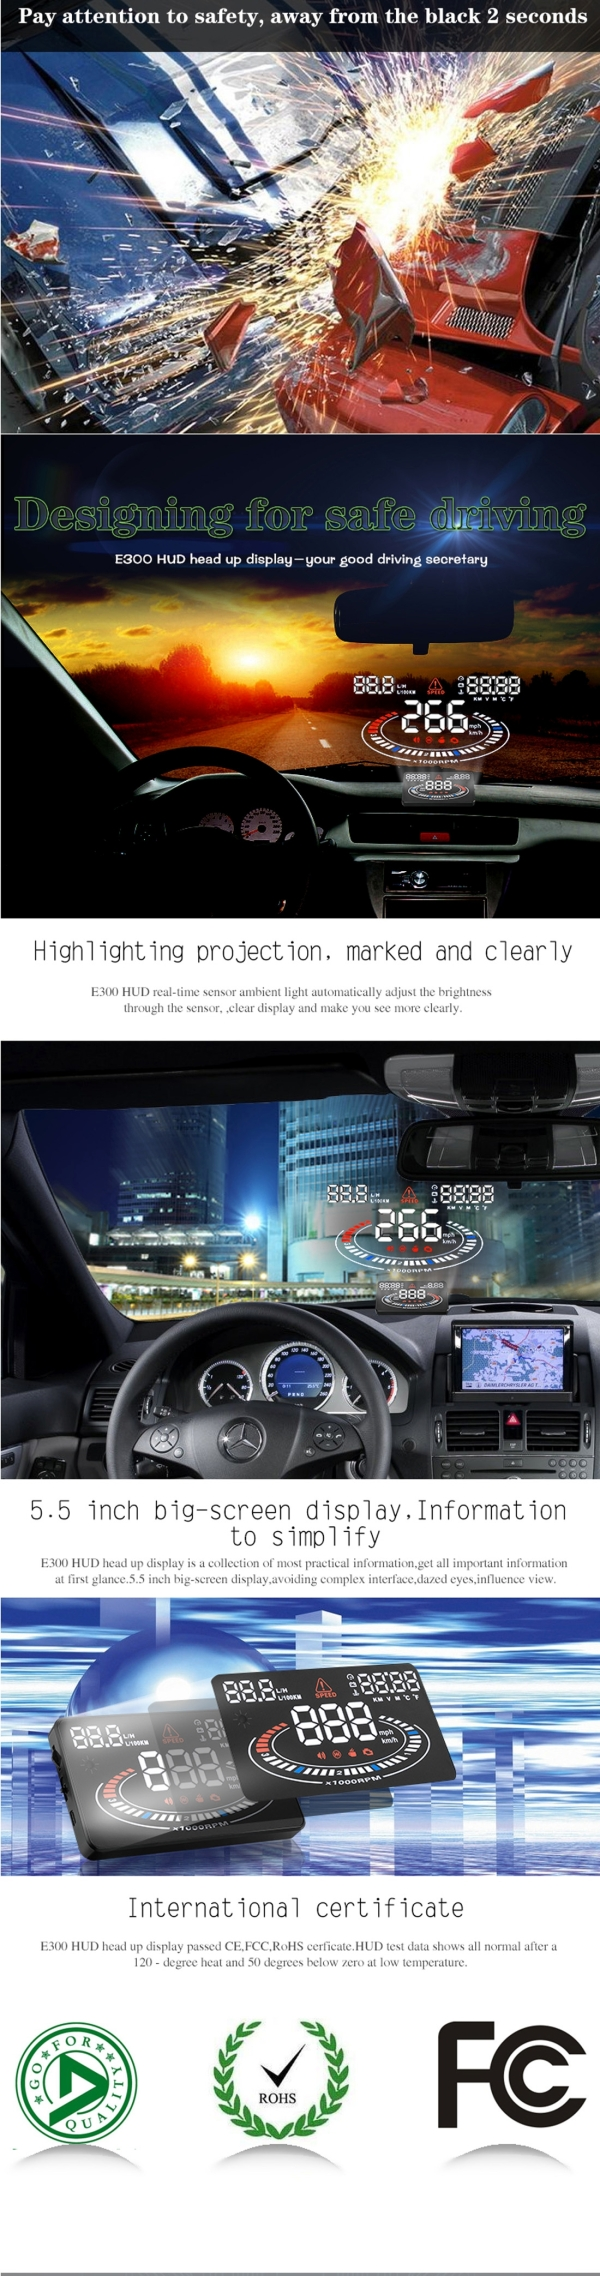 E300 5.5 inch Car OBD II / EUOBD HUD Vehicle-mounted Head Up Display Security System, Support Speed & Fuel Consumption, Overspeed Alarm,  Fuel Consumption, Water Temperature, etc. (Black)